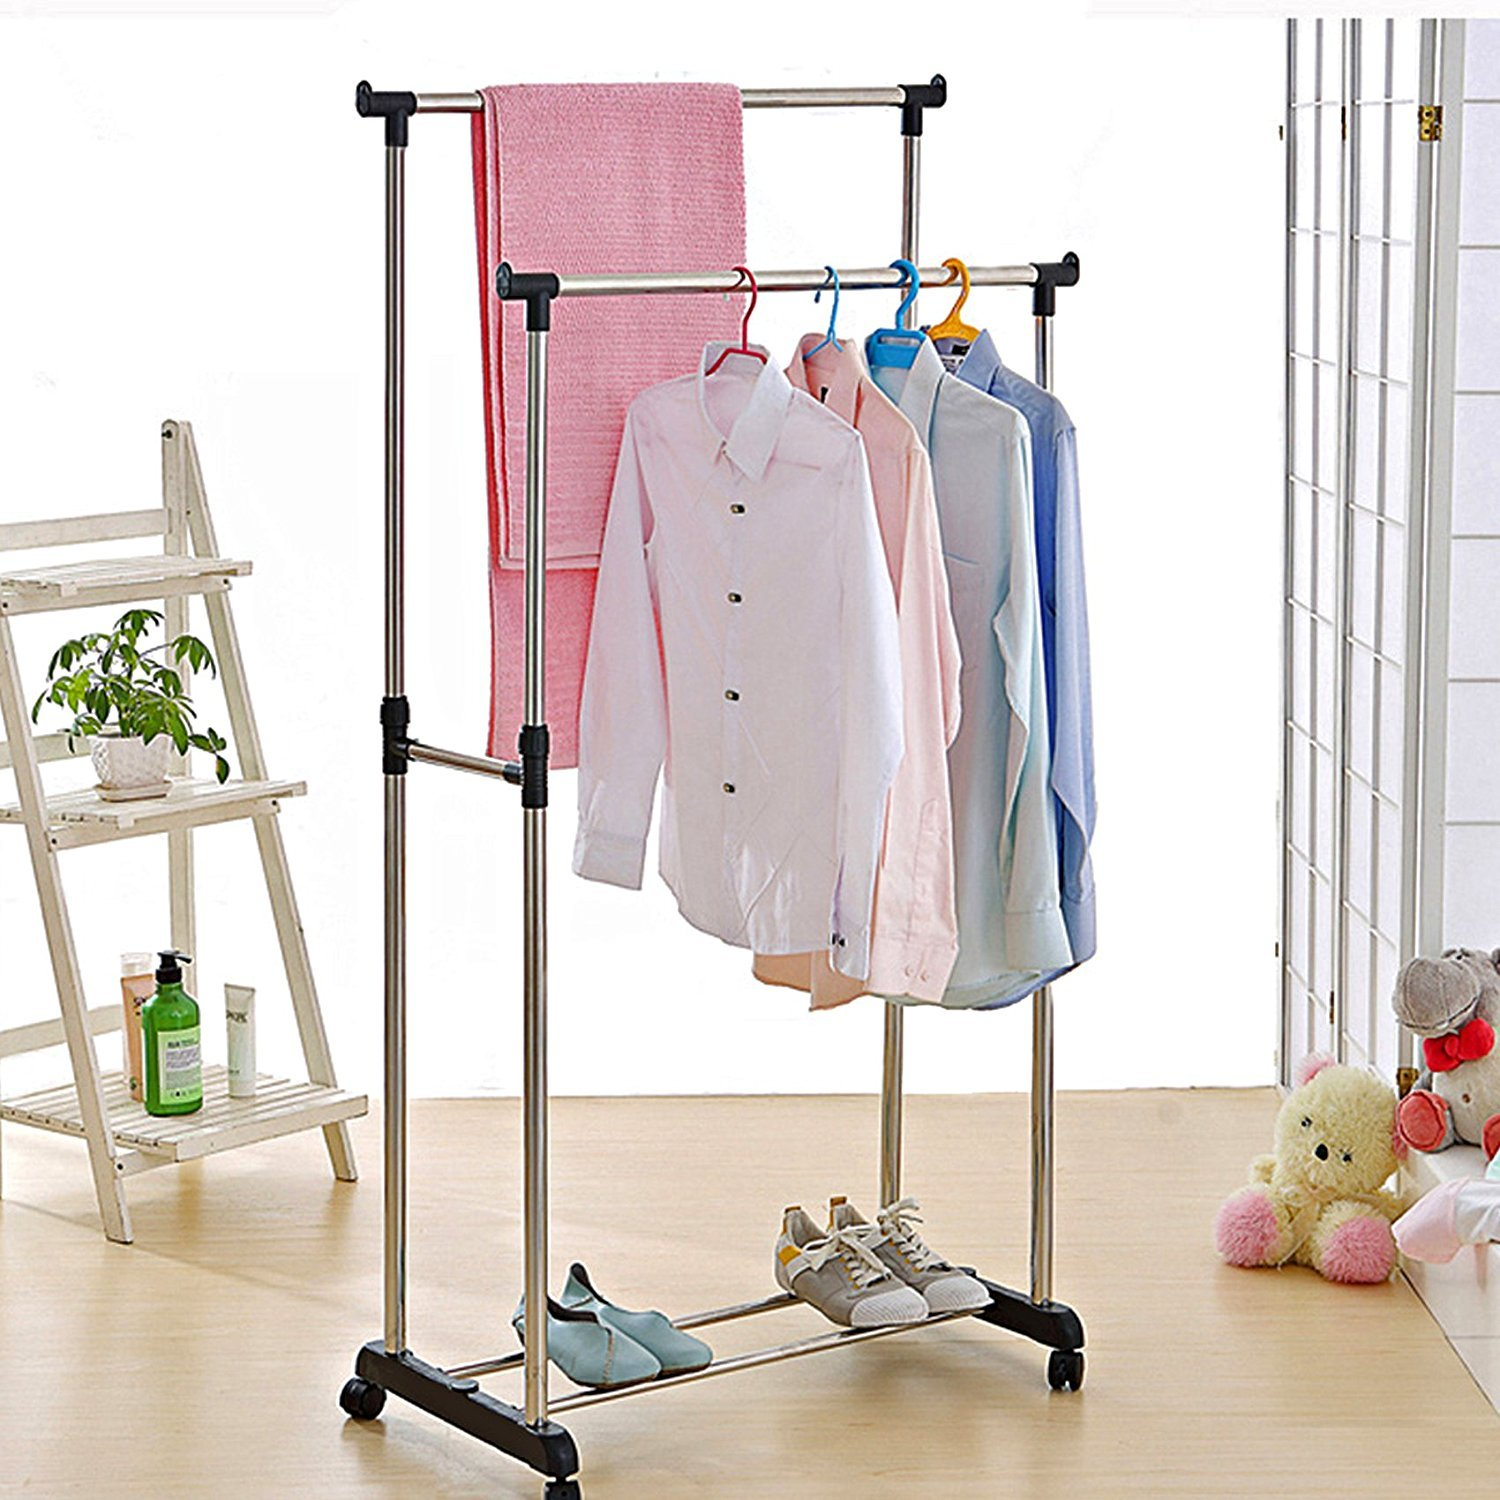 Styleys Stainless Steel Premium Double Pole Clothes Hangerrack, Rolling Bar Rail